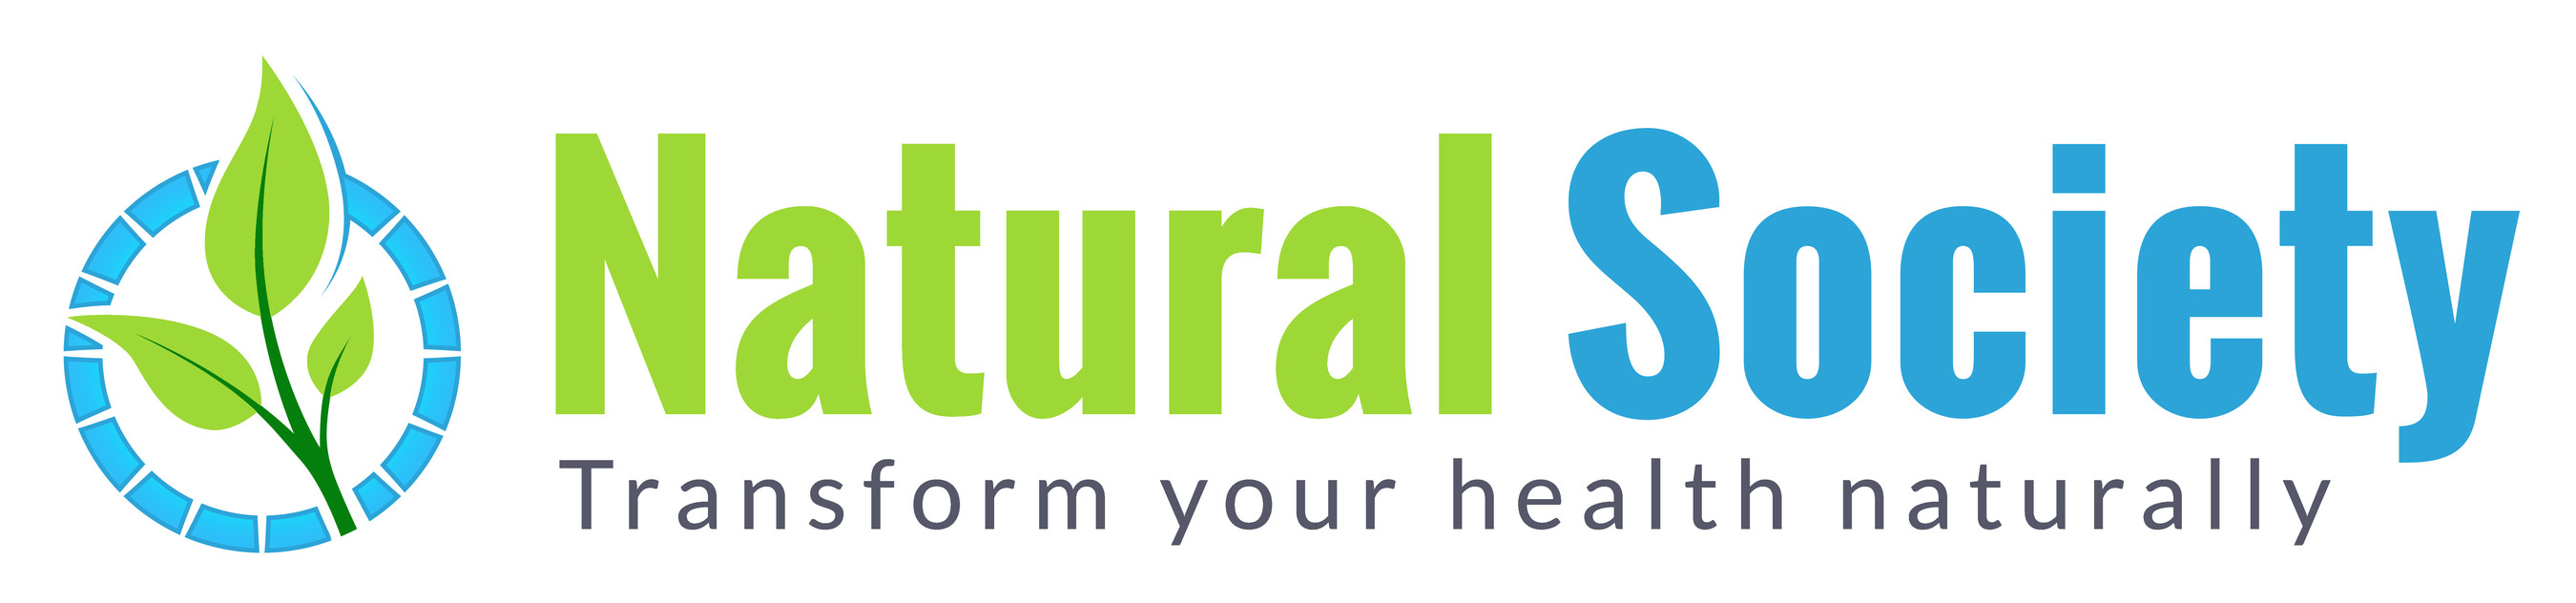 NaturalSociety is a natural health organization dedicated to providing life-saving techniques that are backed ...